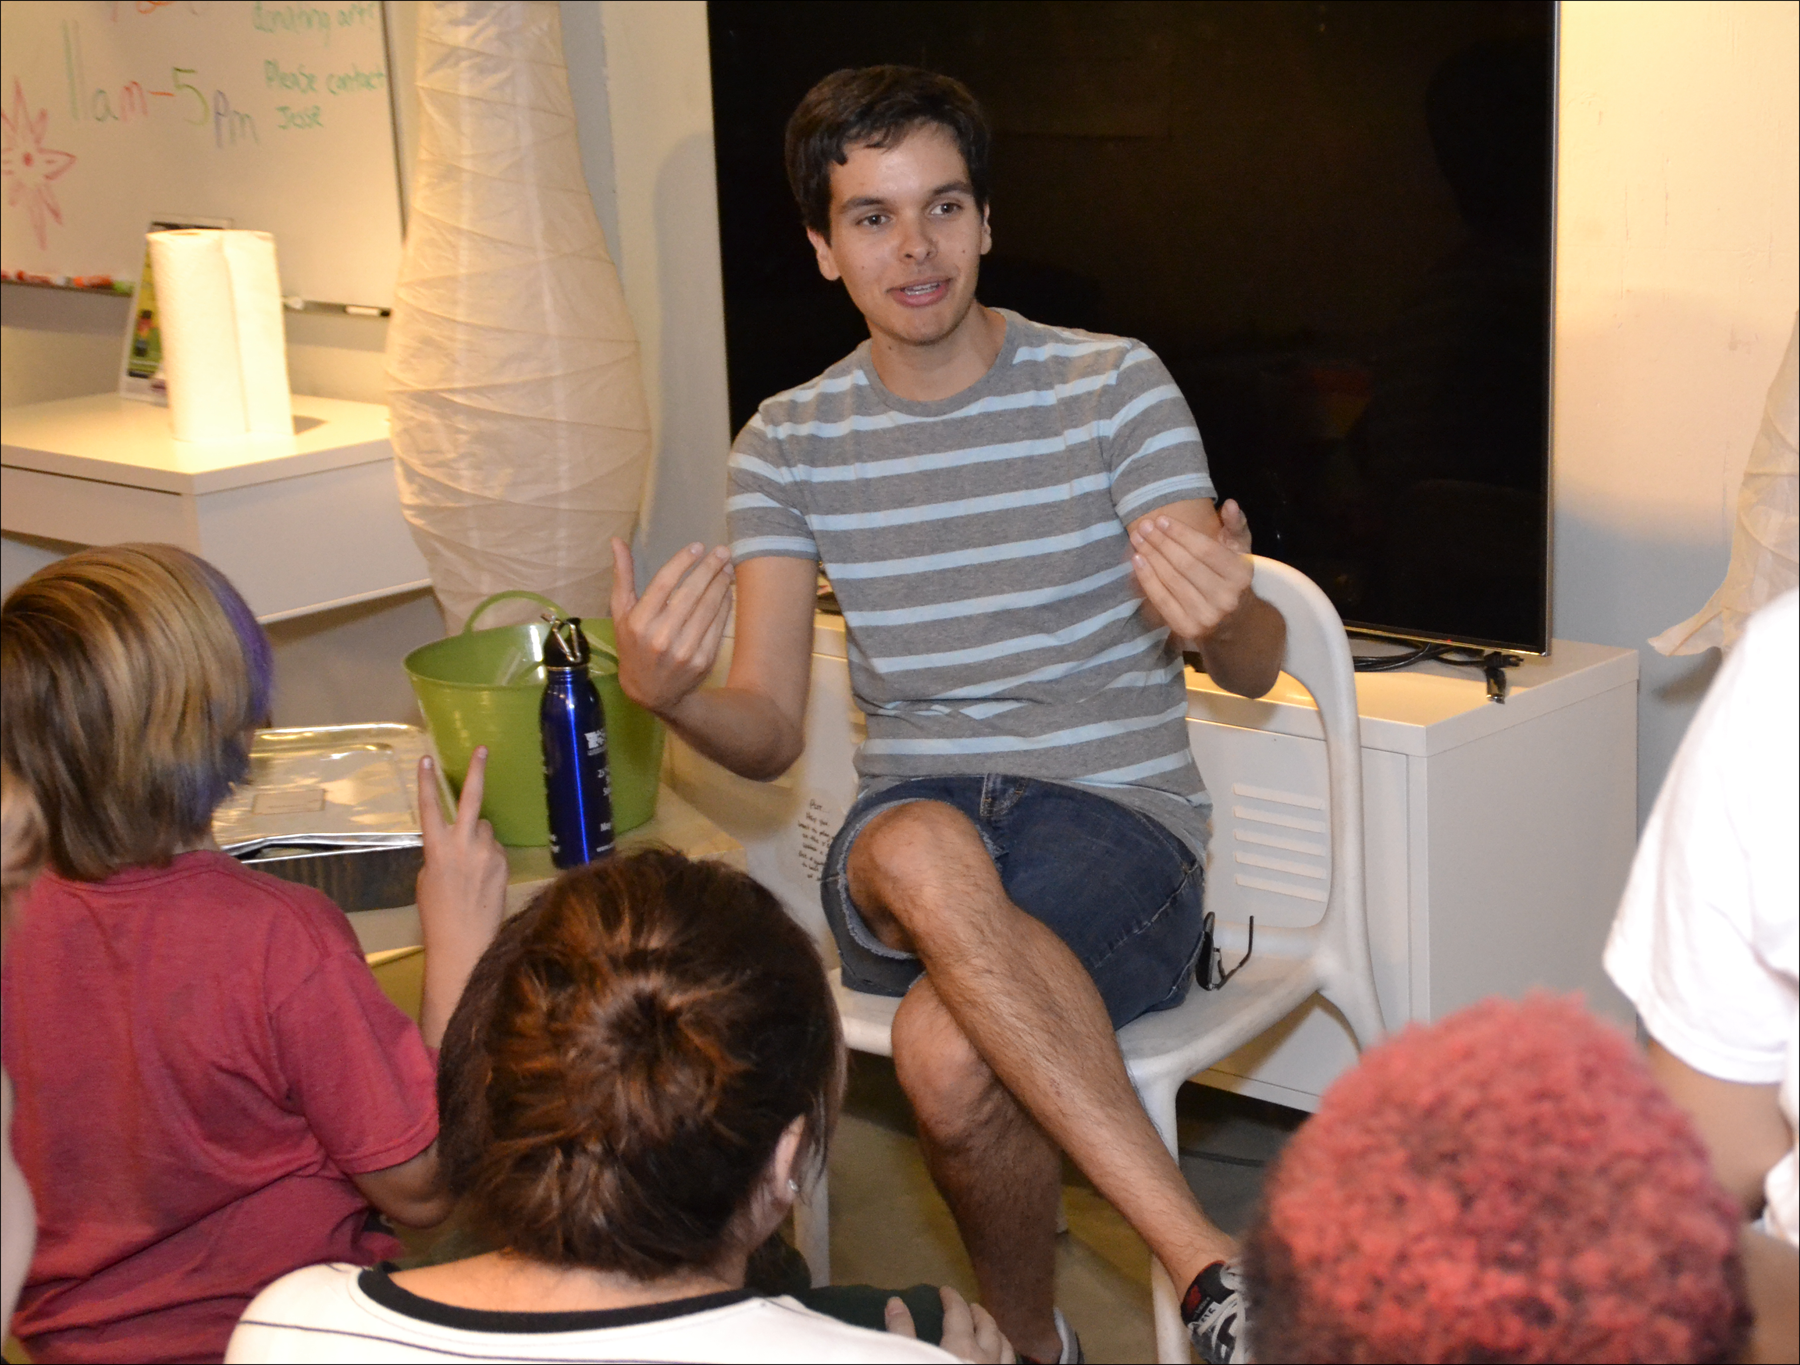 Gay teen support group — photo 11